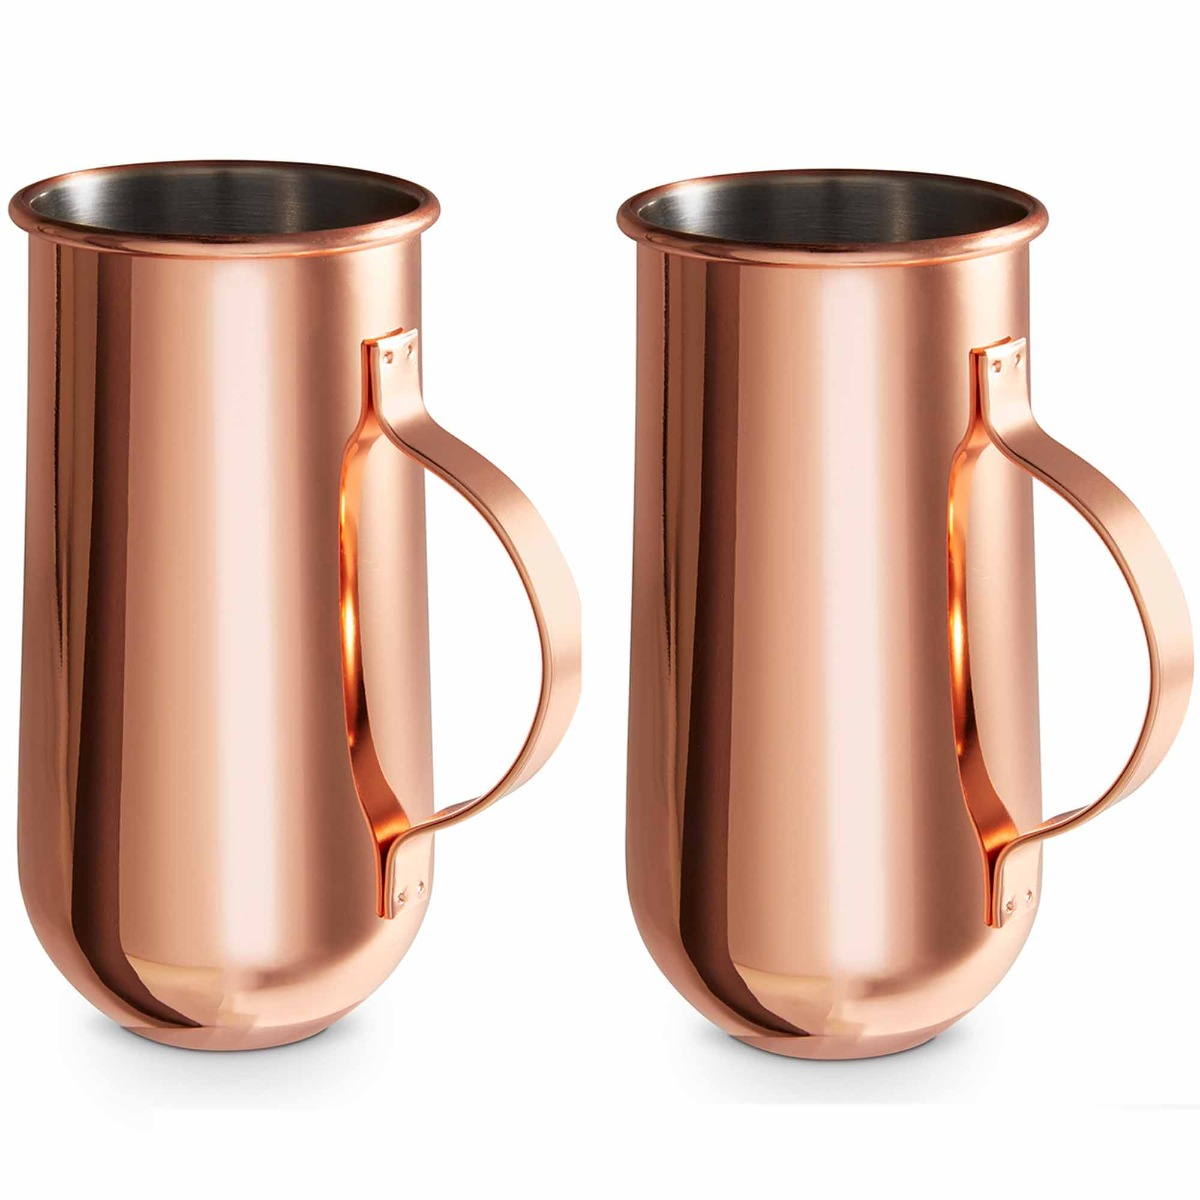 VonShef Set of 2 Copper Mugs with Handle – Ideal for Hot & Cold Drinks, Inc. Latte, Cappuccino & Americano or Cold Brew Coffee, Cocktails & Beer – Perfect Birthday or Housewarming Gift